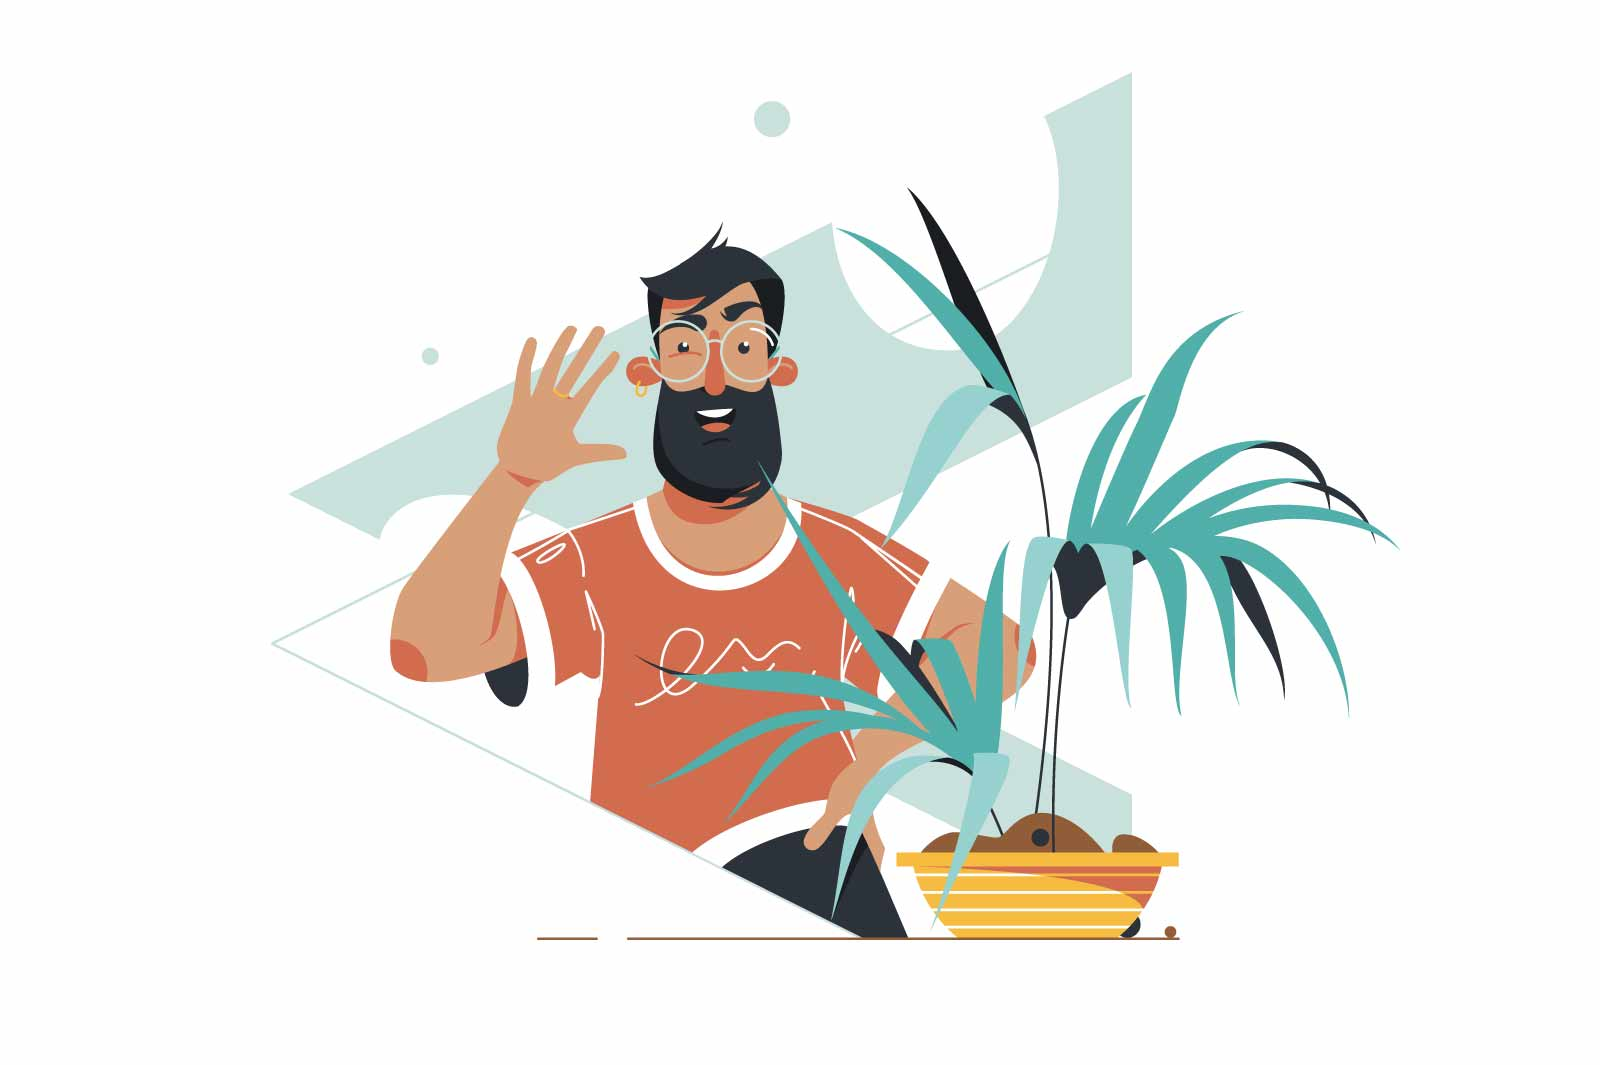 Bearded guy on video call vector illustration. Man wave hello and chat with remote connection on device flat style. Technology and online communication concept. Isolated on white background